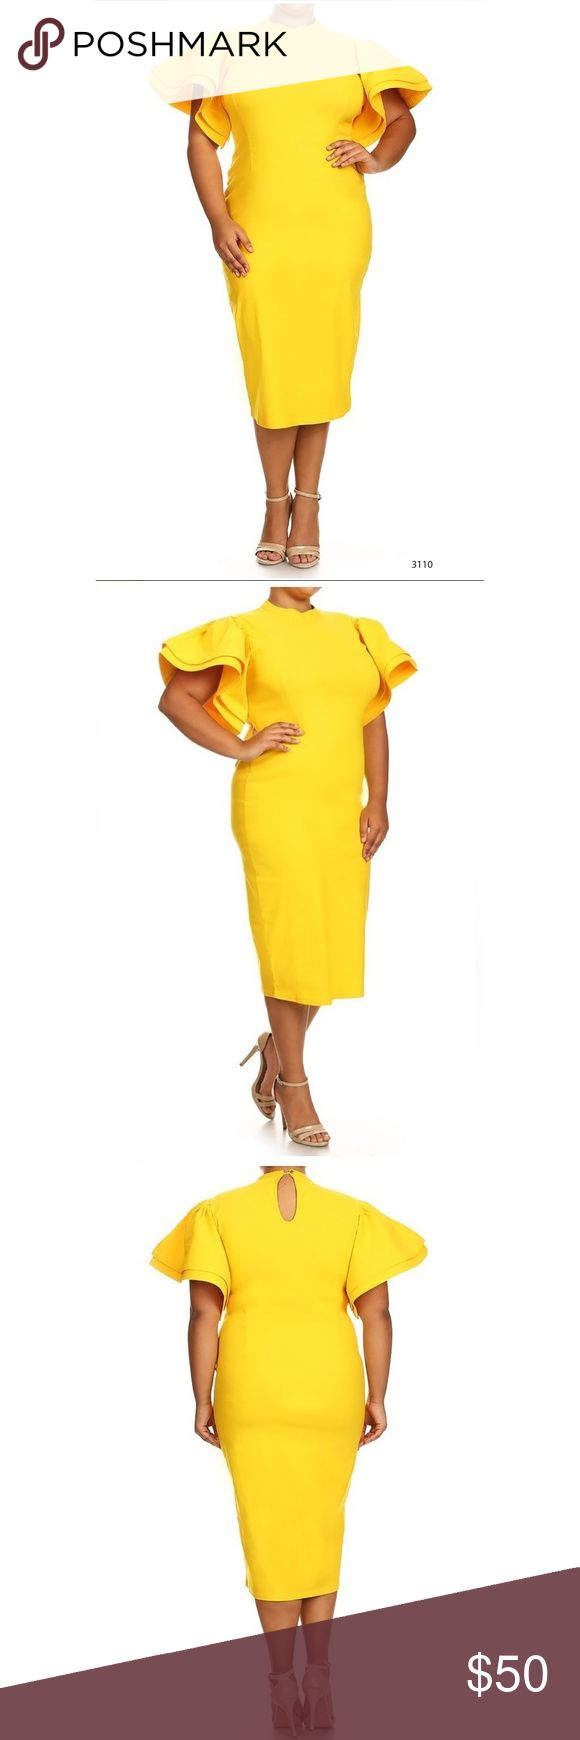 Yellow Ruffle Accent Midi Dress Regular/Plus Size Yellow Ruffle Accent Midi Dress Plus Size. Gorgeous yellow regular or plus size midi dress with ruffle accents. Perfect dress. Made of stretchy polyester material. Dresses Midi